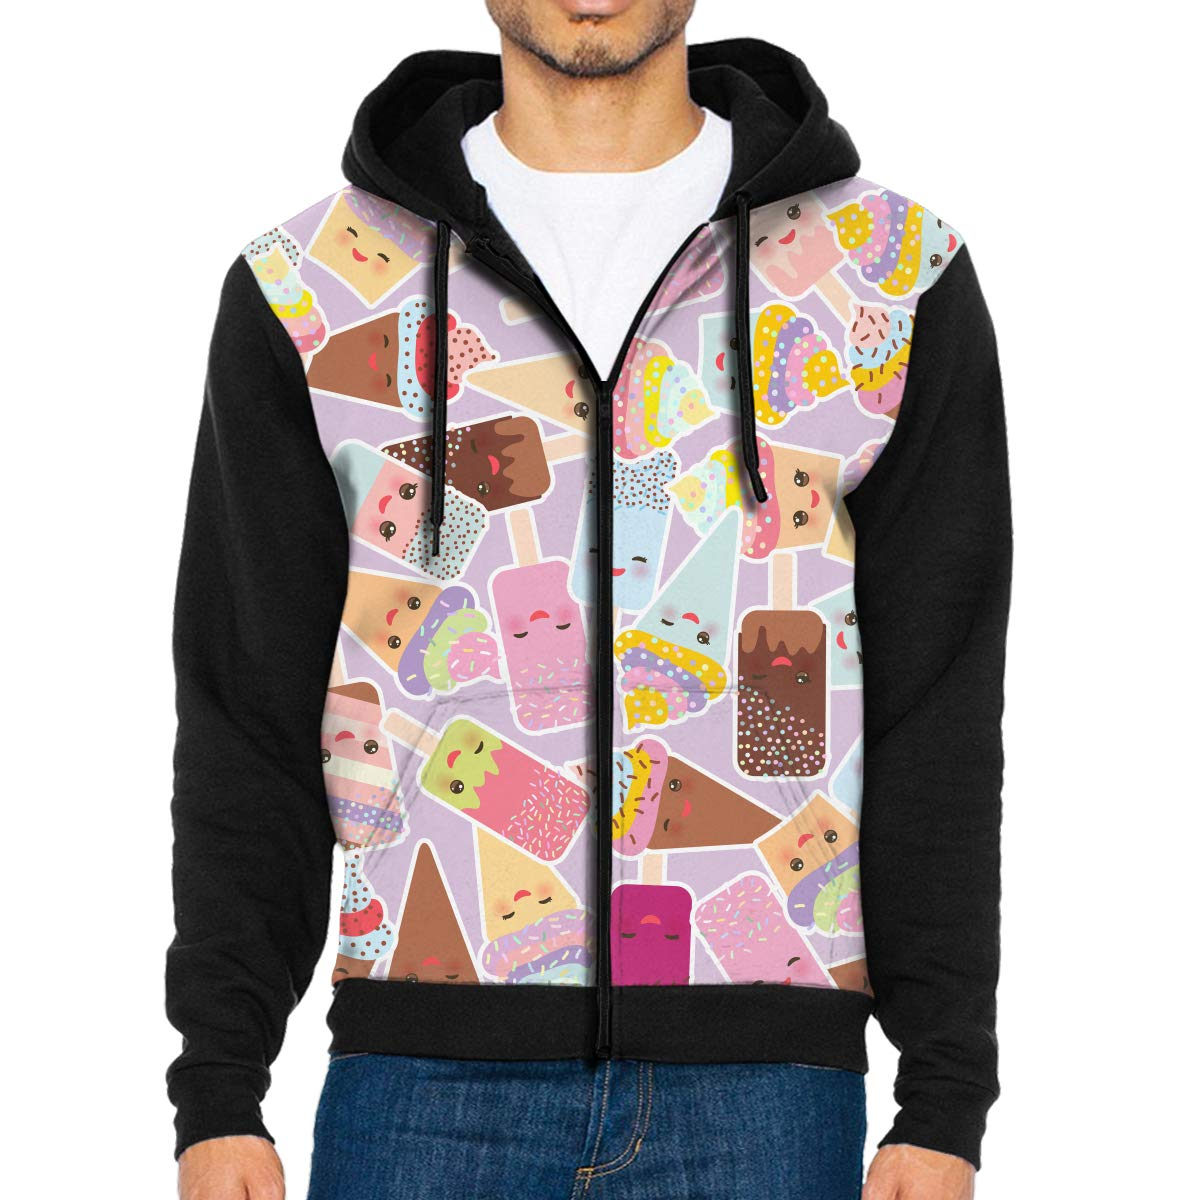 SAPOY Men's Fashion Hoodies Kawaii Cupcakes with Cream Pullover Hooded Sweatshirt by SAPOY